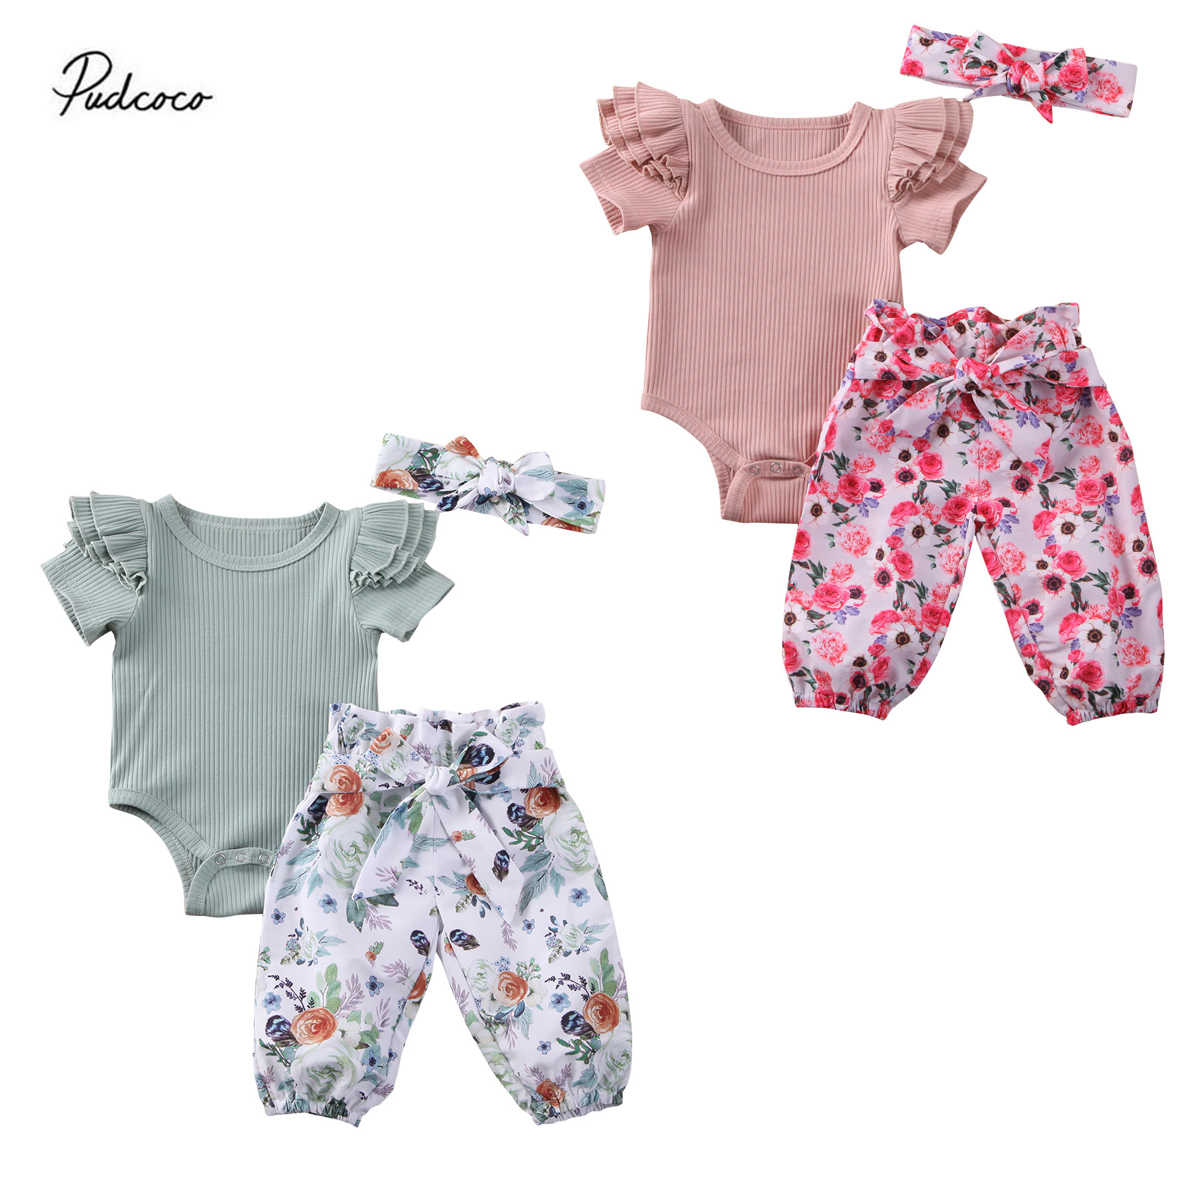 2020 Baby Summer Clothing 3Pcs Baby Outfit Set Baby Girl Clothes Ruffle Short Sleeve Ribbed Romper + Floral Pants + Bow Headband